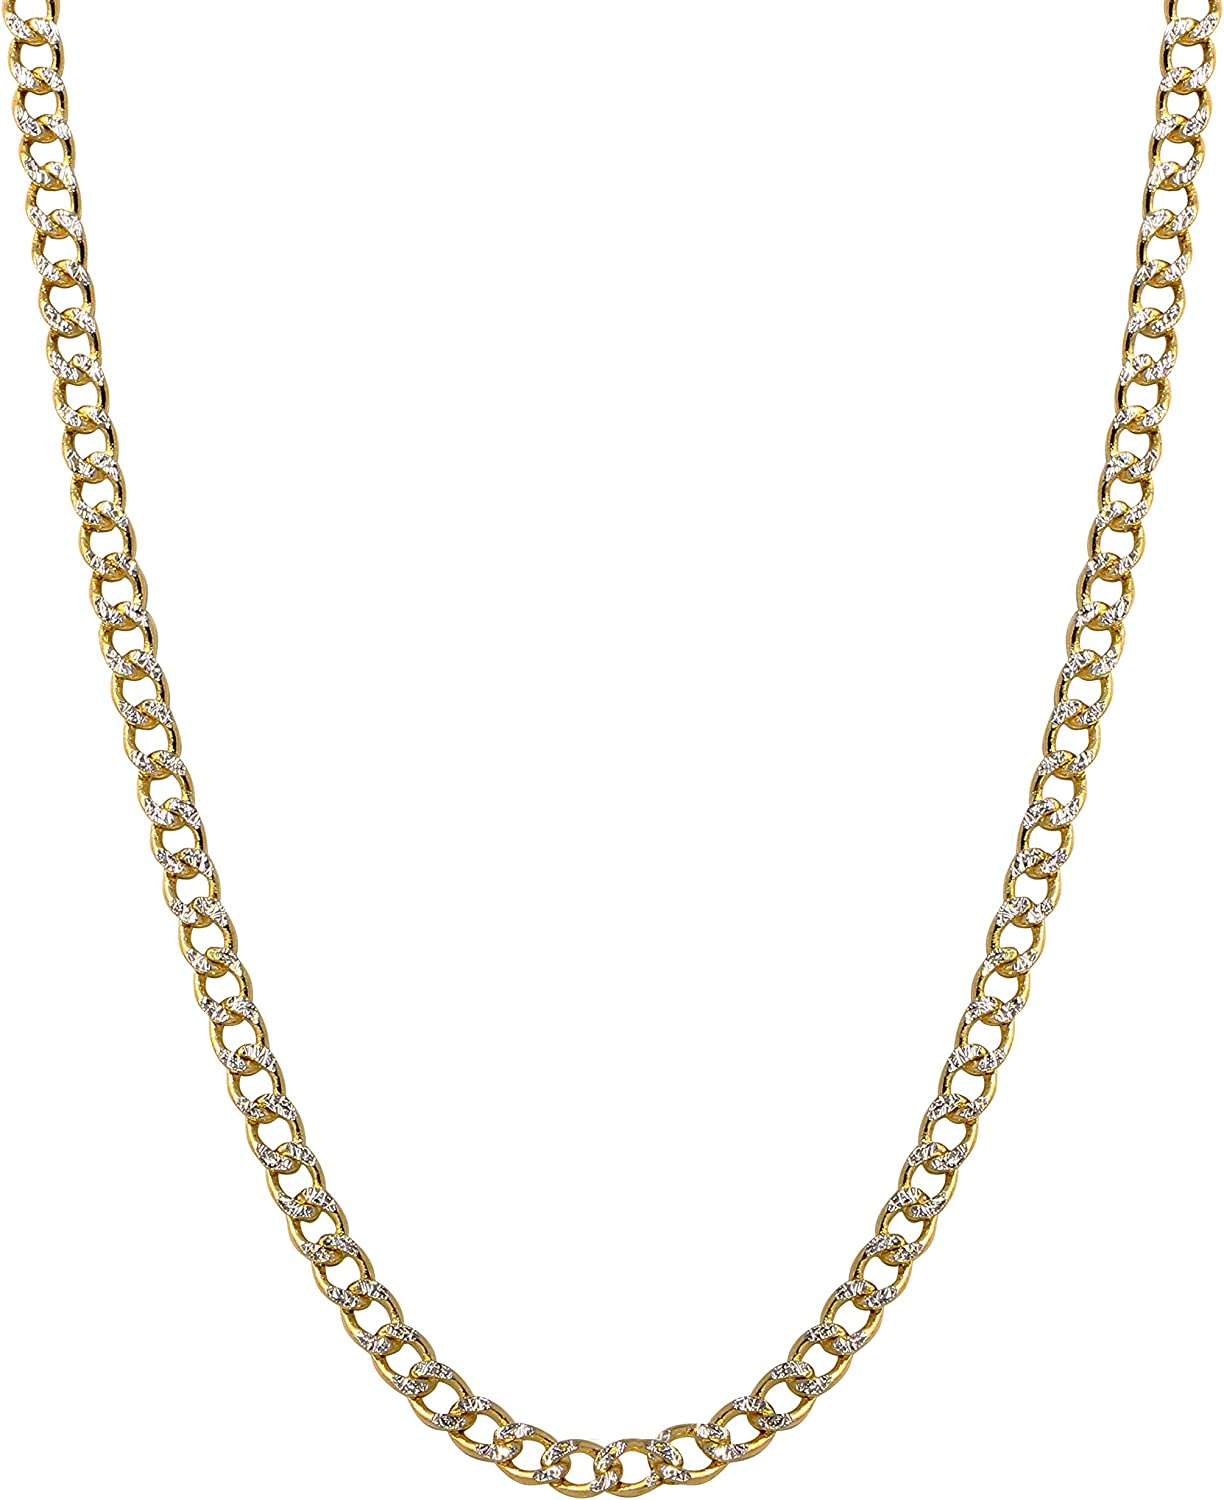 Bee Jewels Mens 14k Two-Tone Gold 2.5mm Hollow Cuban Curb White Pave Chain Necklace